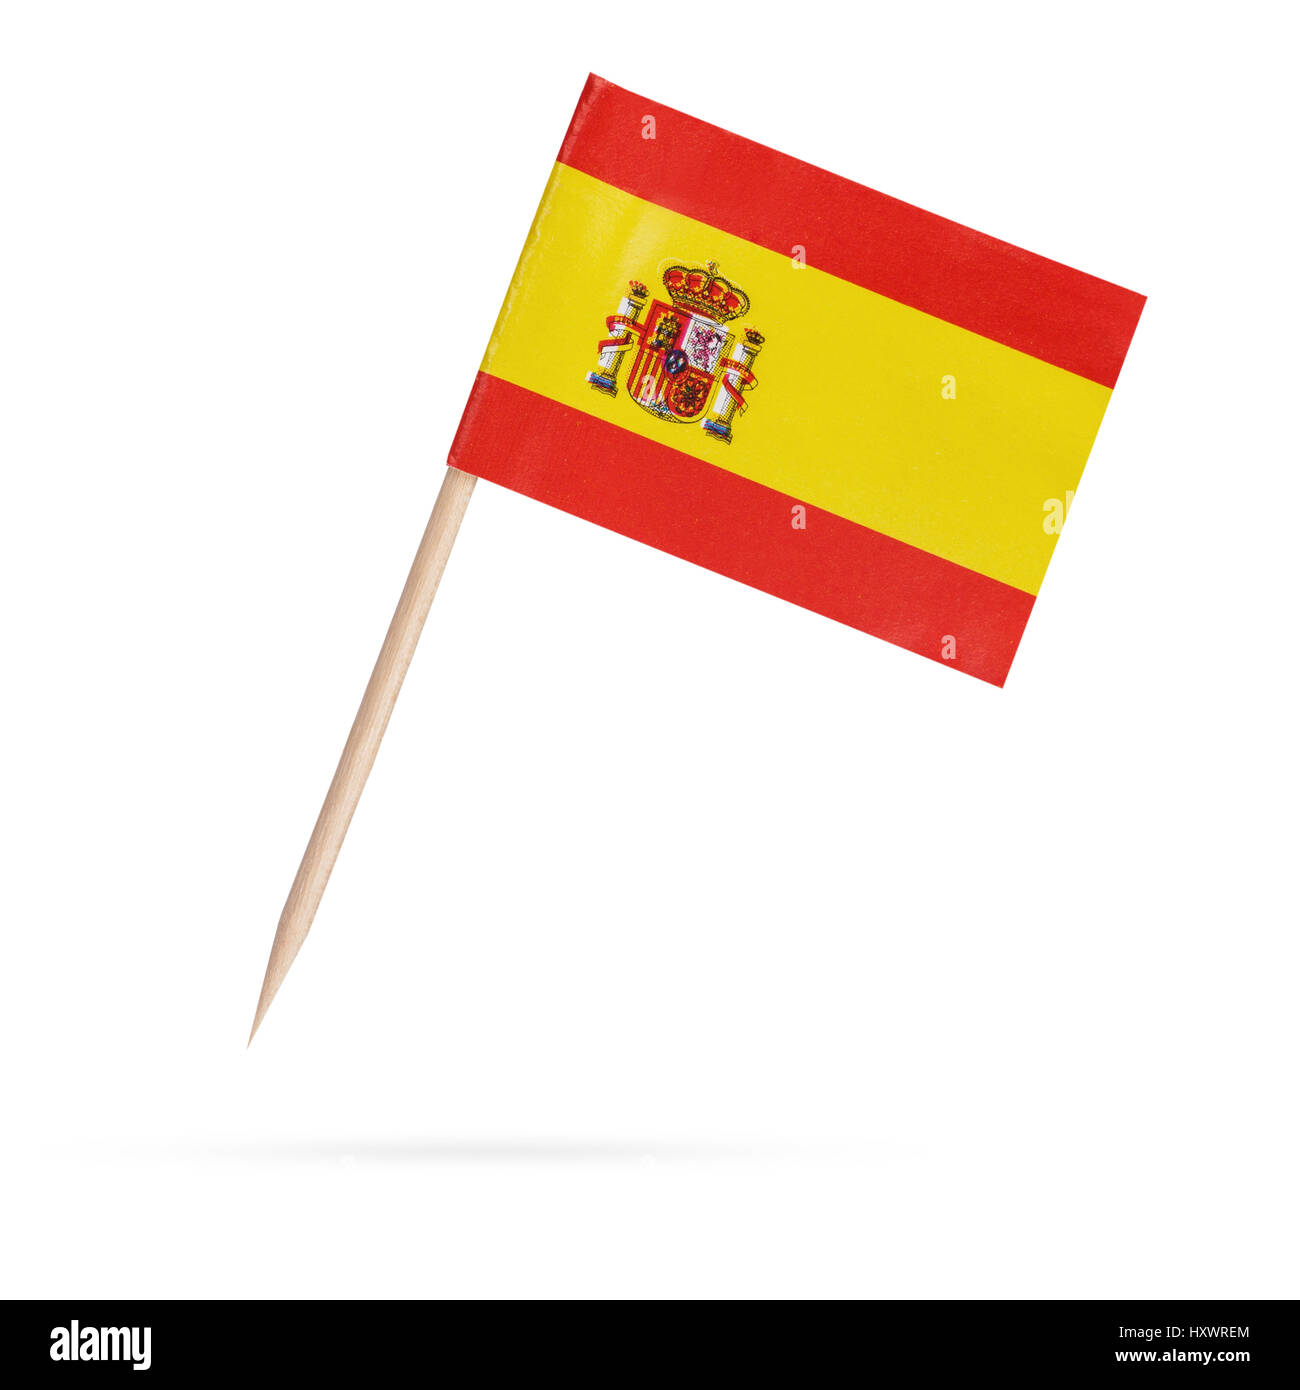 Miniature paper flag Spain. Isolated Spanish Flag on white background.With shadow below Stock Photo